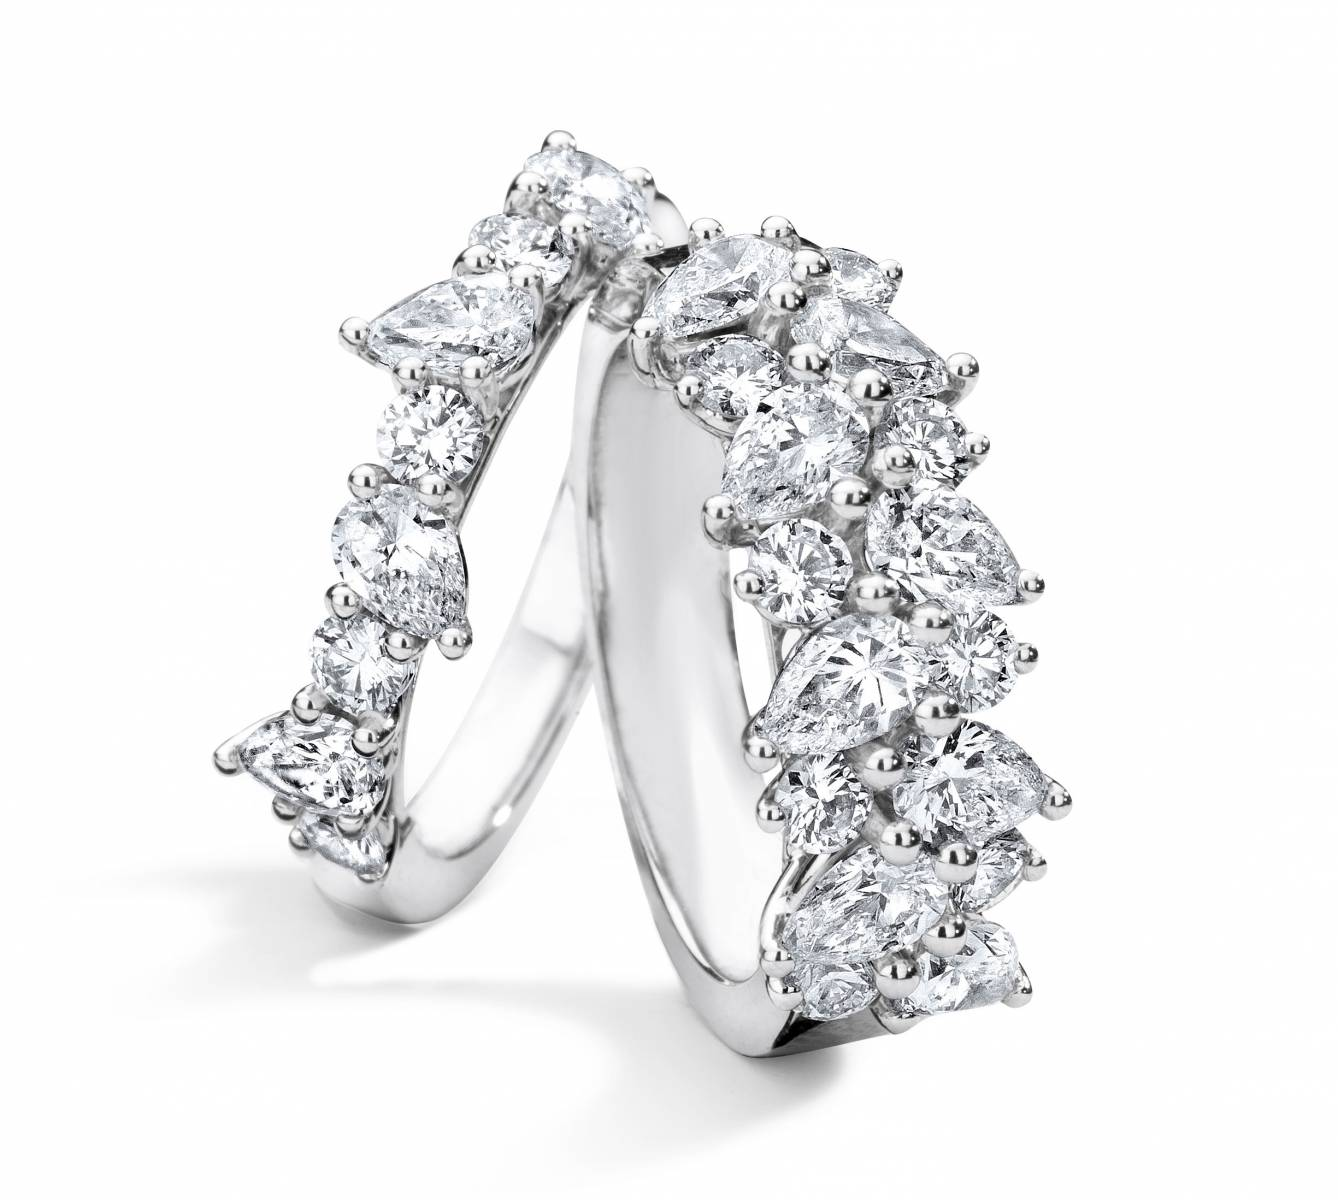 Juwelier Vandromme - Juwelen - Verlovingsring - Trouwring  – House of Weddings - 10